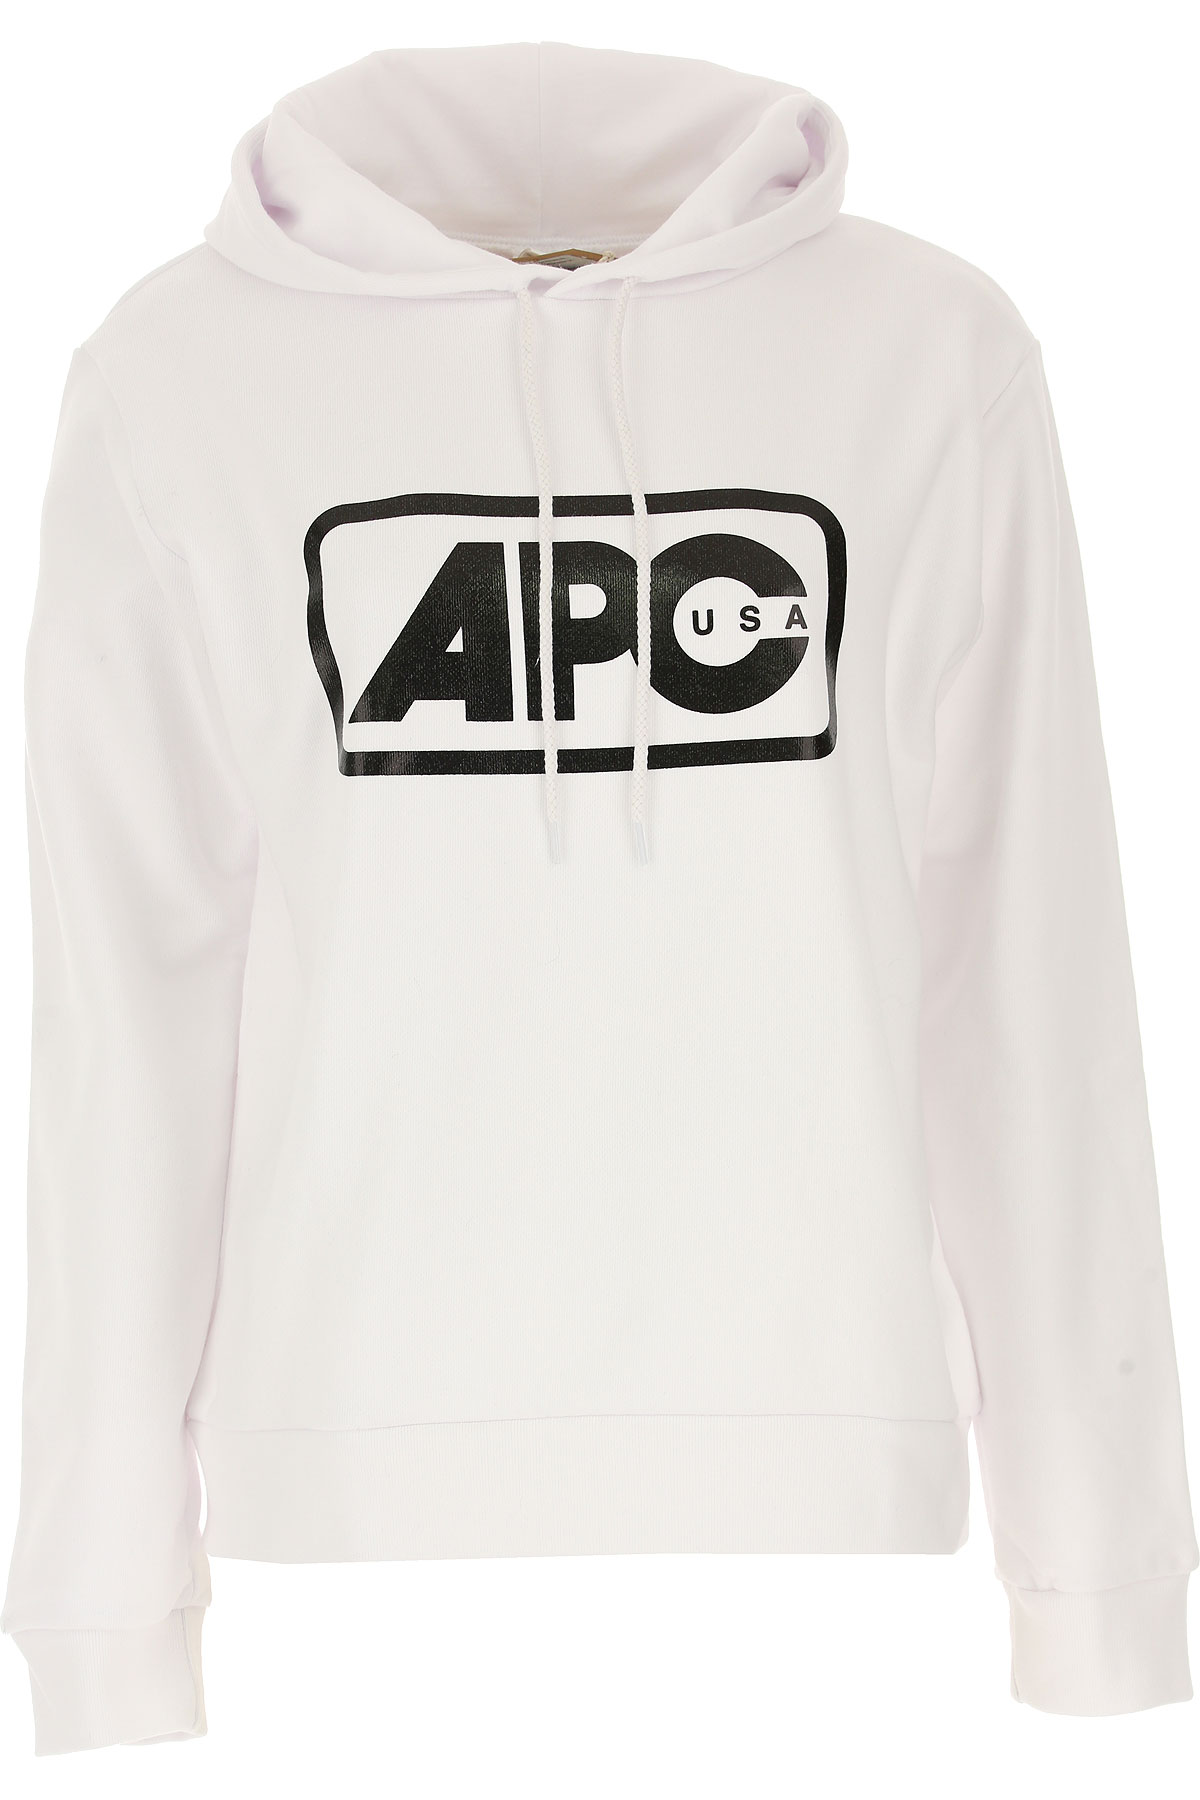 Image of A.P.C Sweatshirt for Women, White, Cotton, 2017, 2 4 6 8